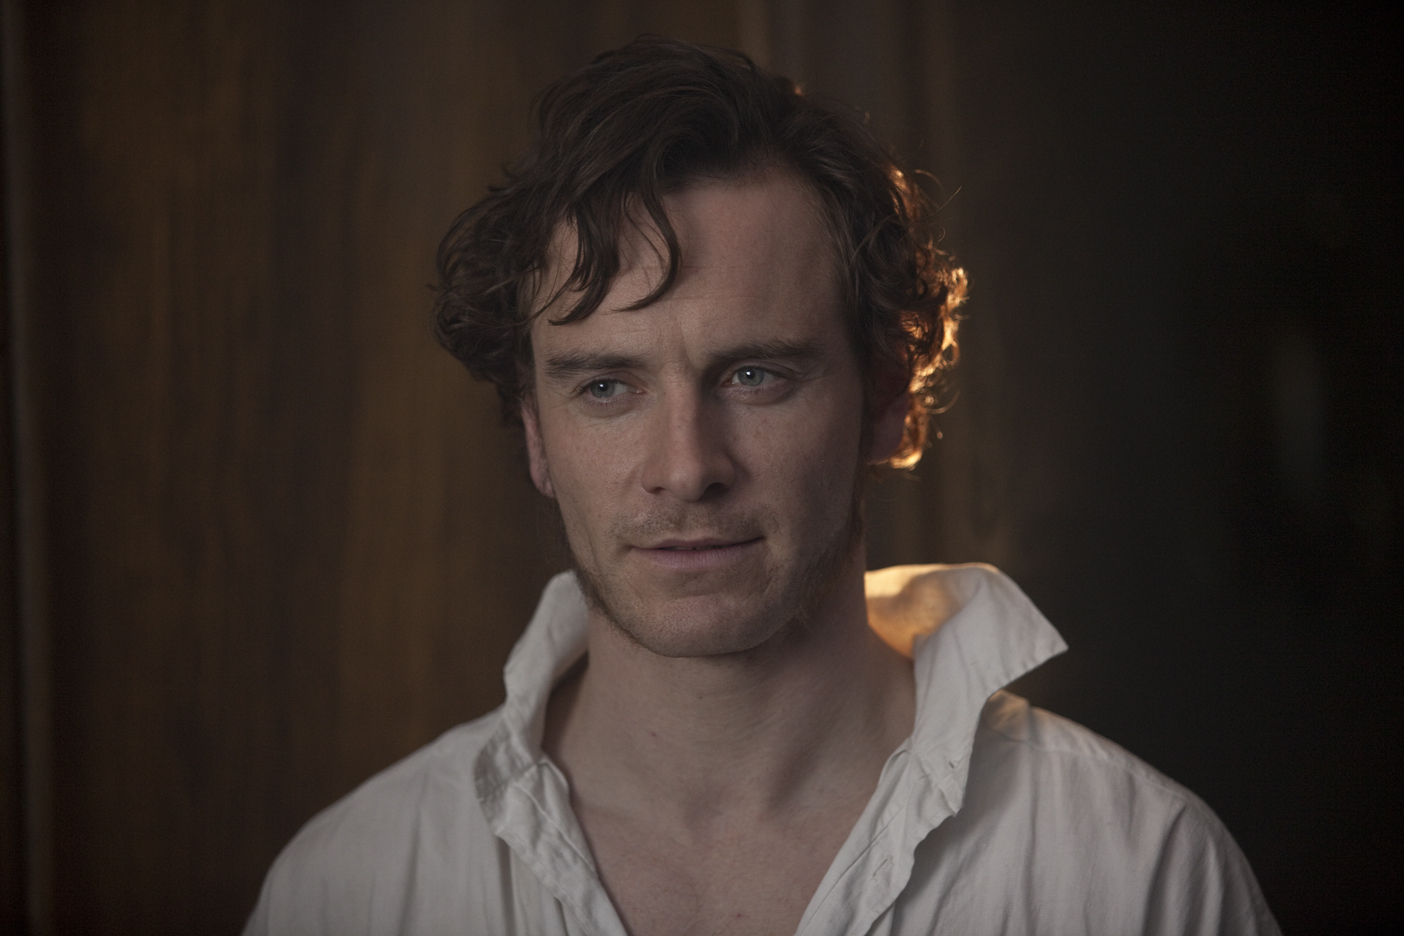 He's Hot in Period Pieces